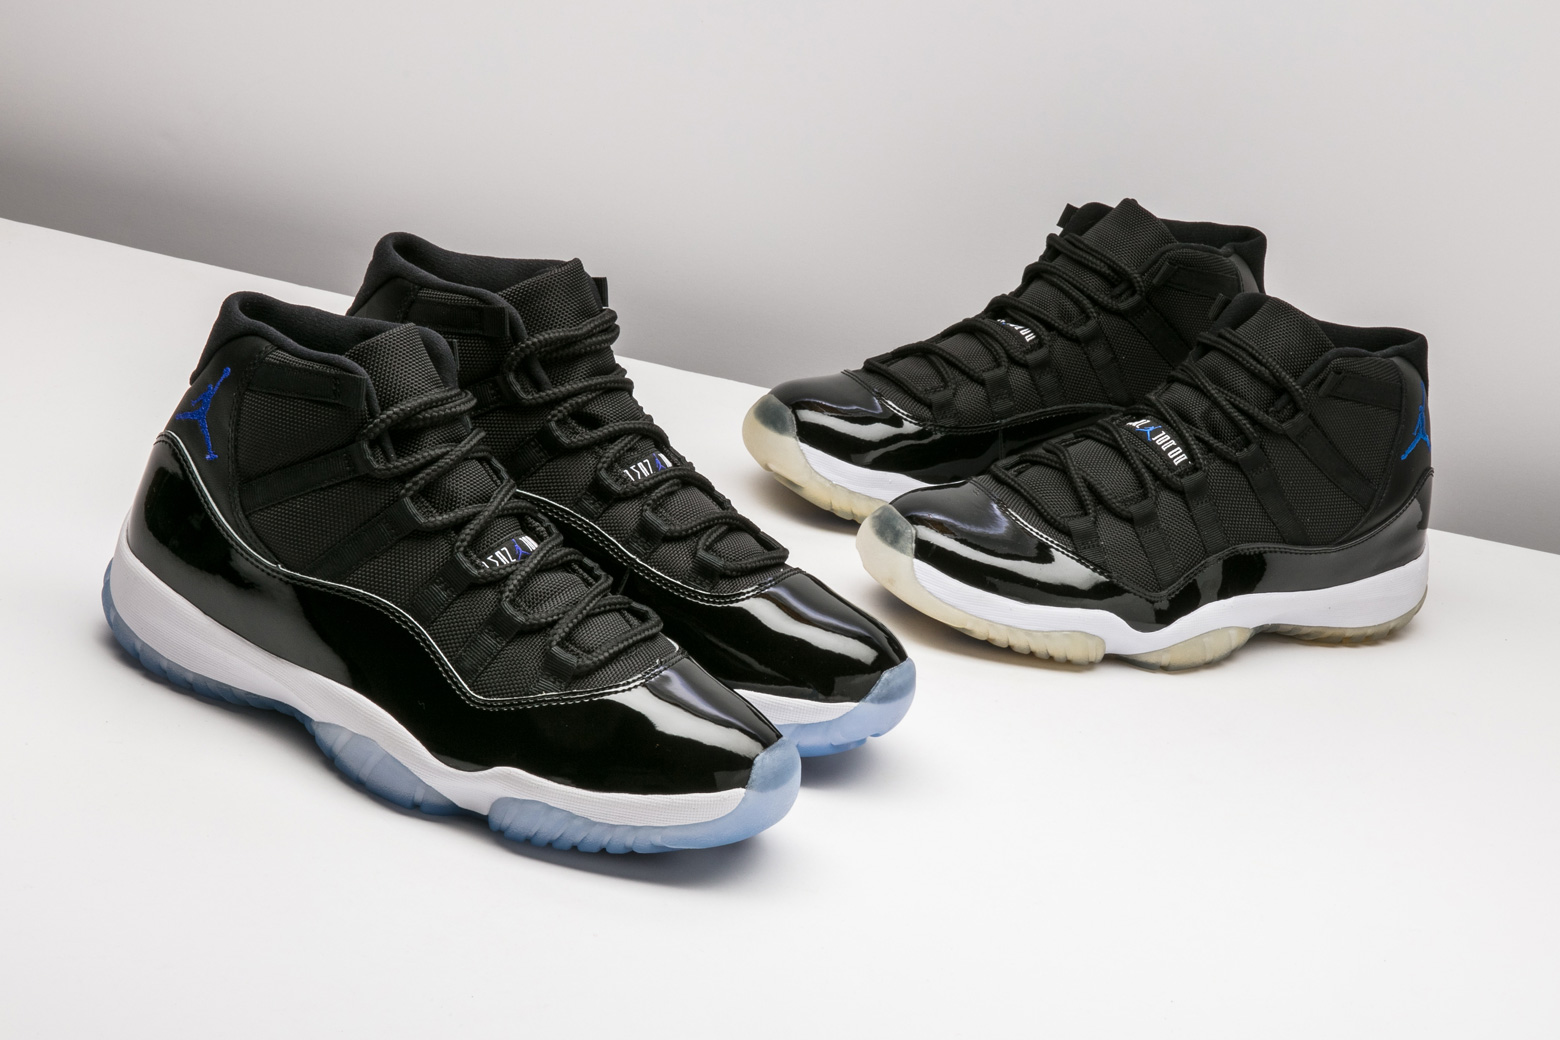 Here's The How Air Jordan 11